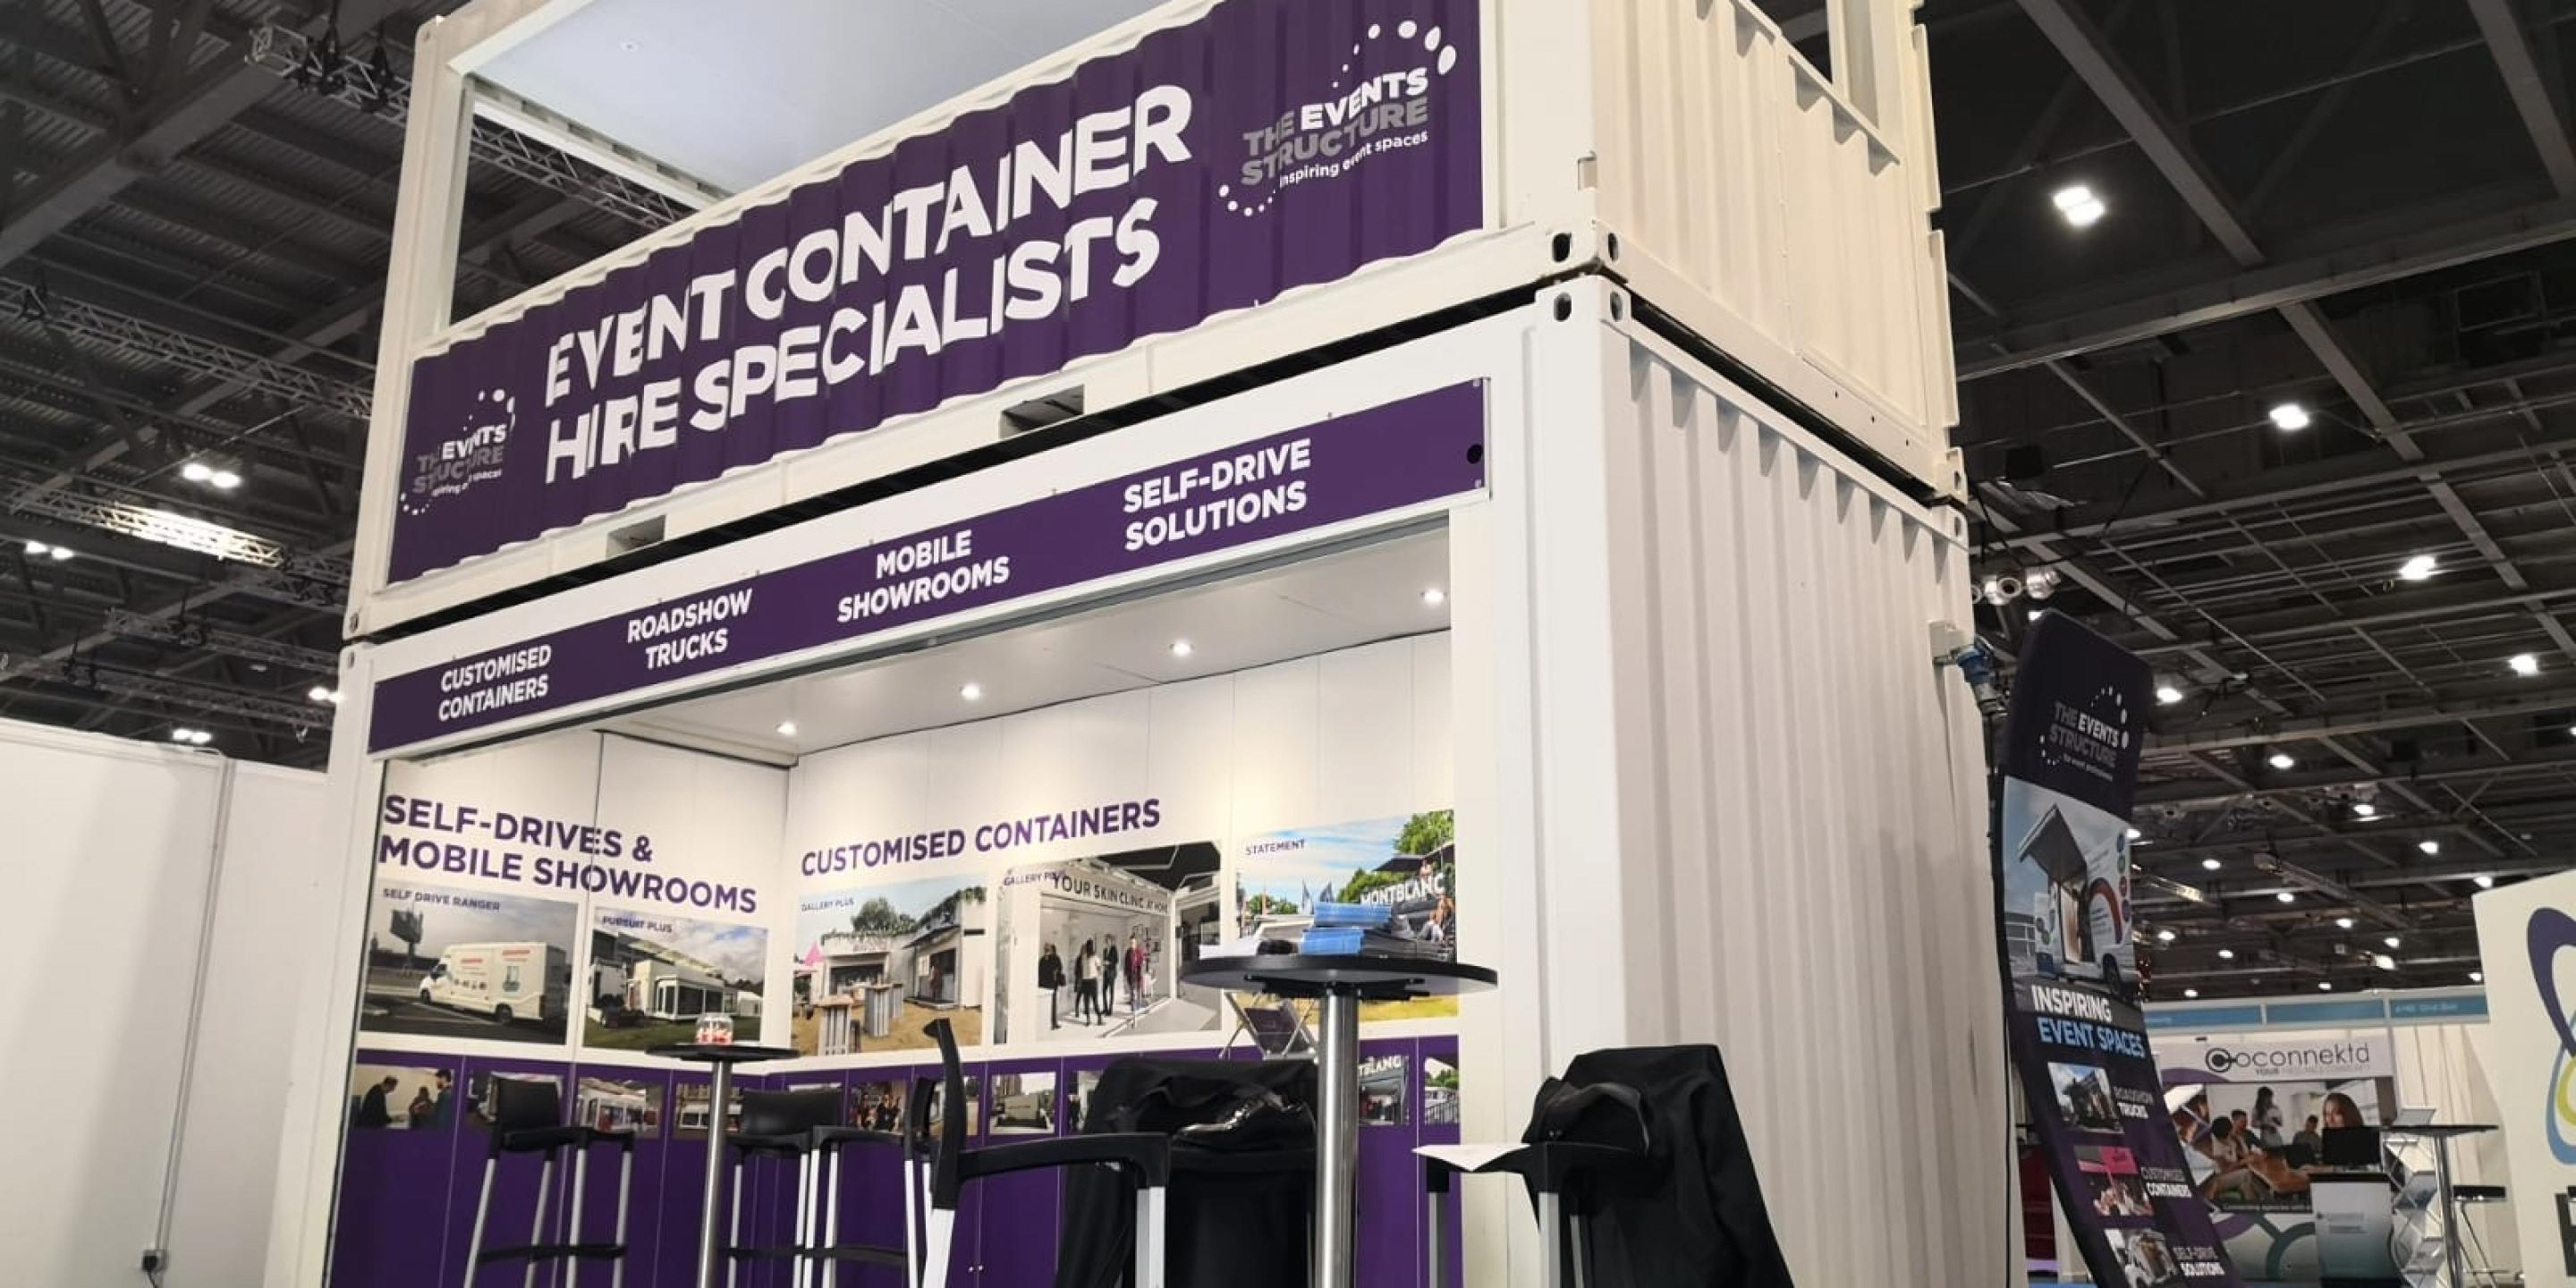 Impact Premium event shipping container conversion multi-deck at the event production show 2020